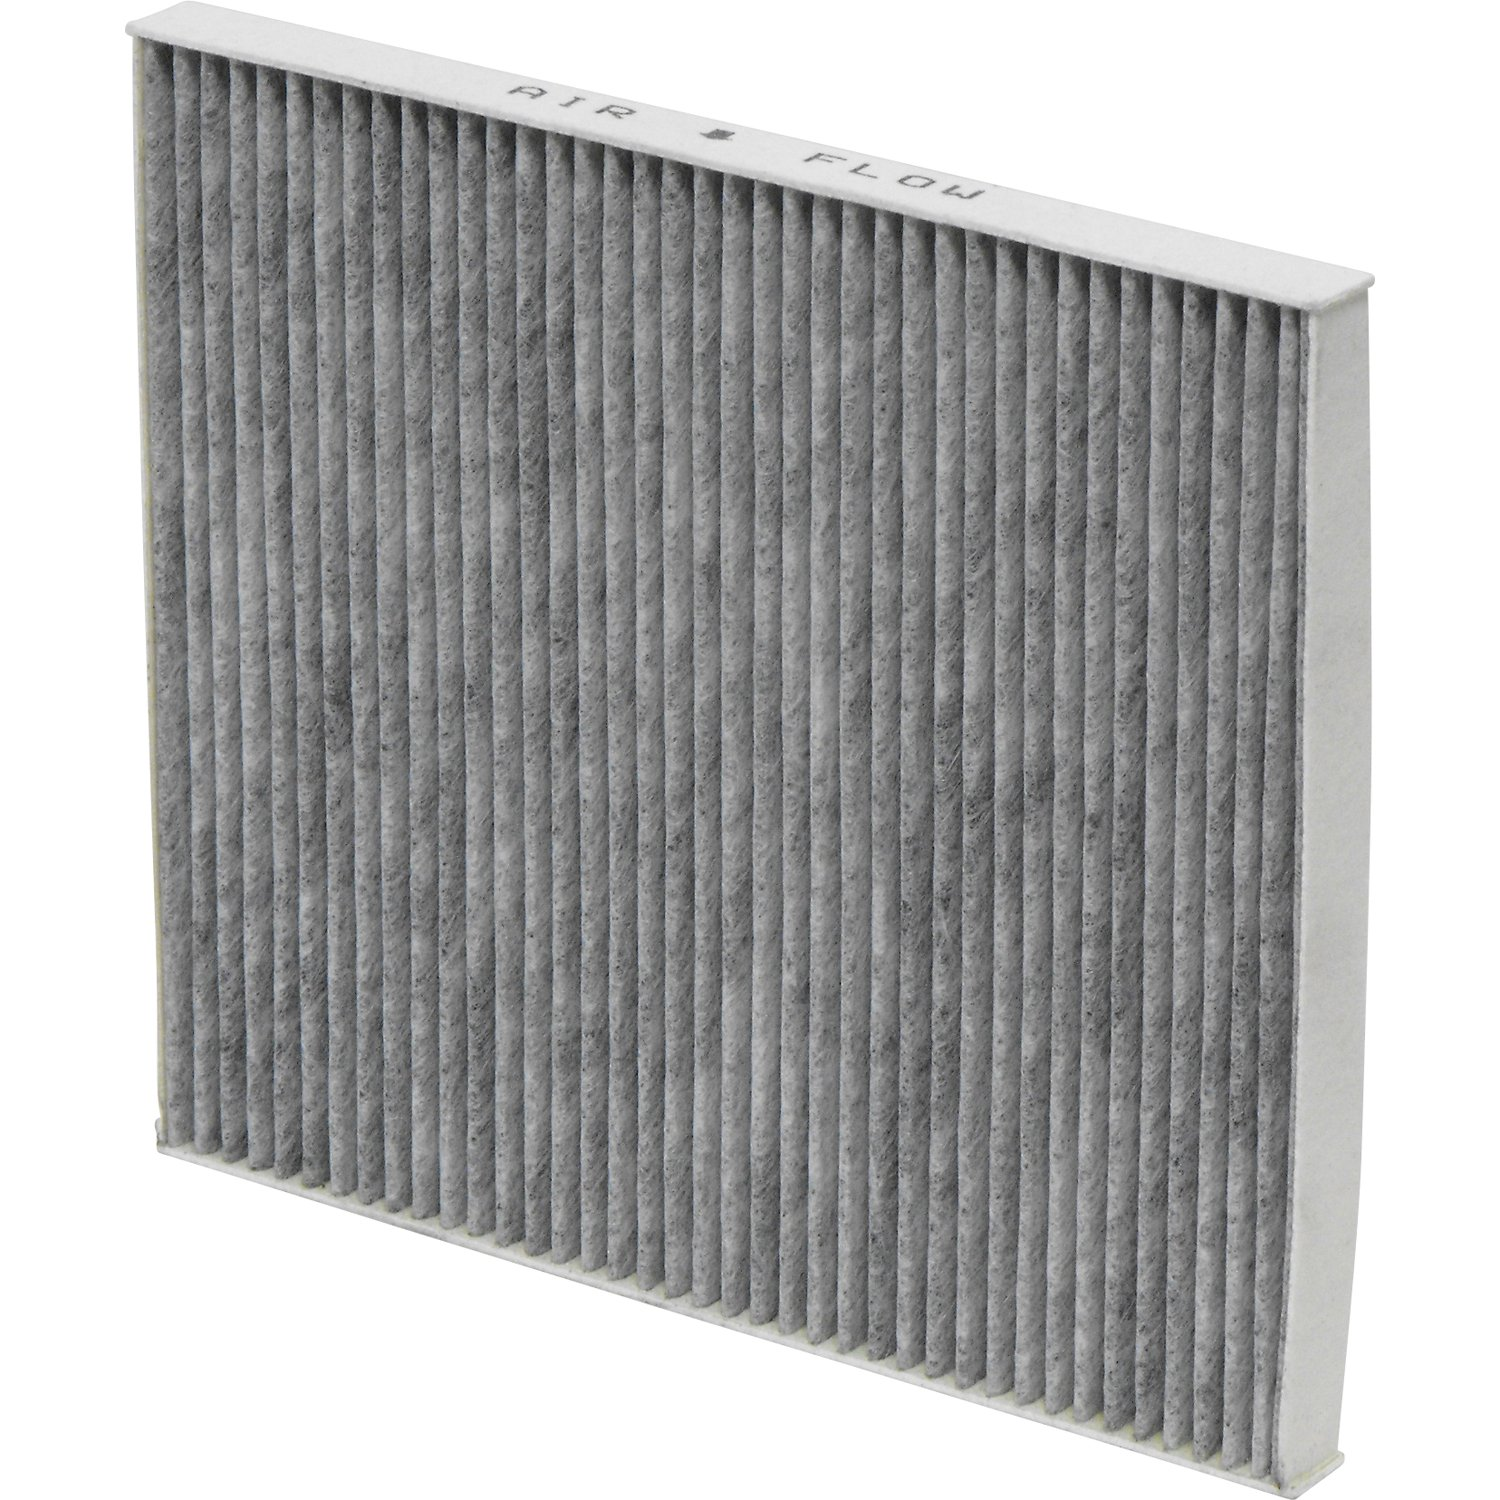 UAC FI 1149C Cabin Air Filter